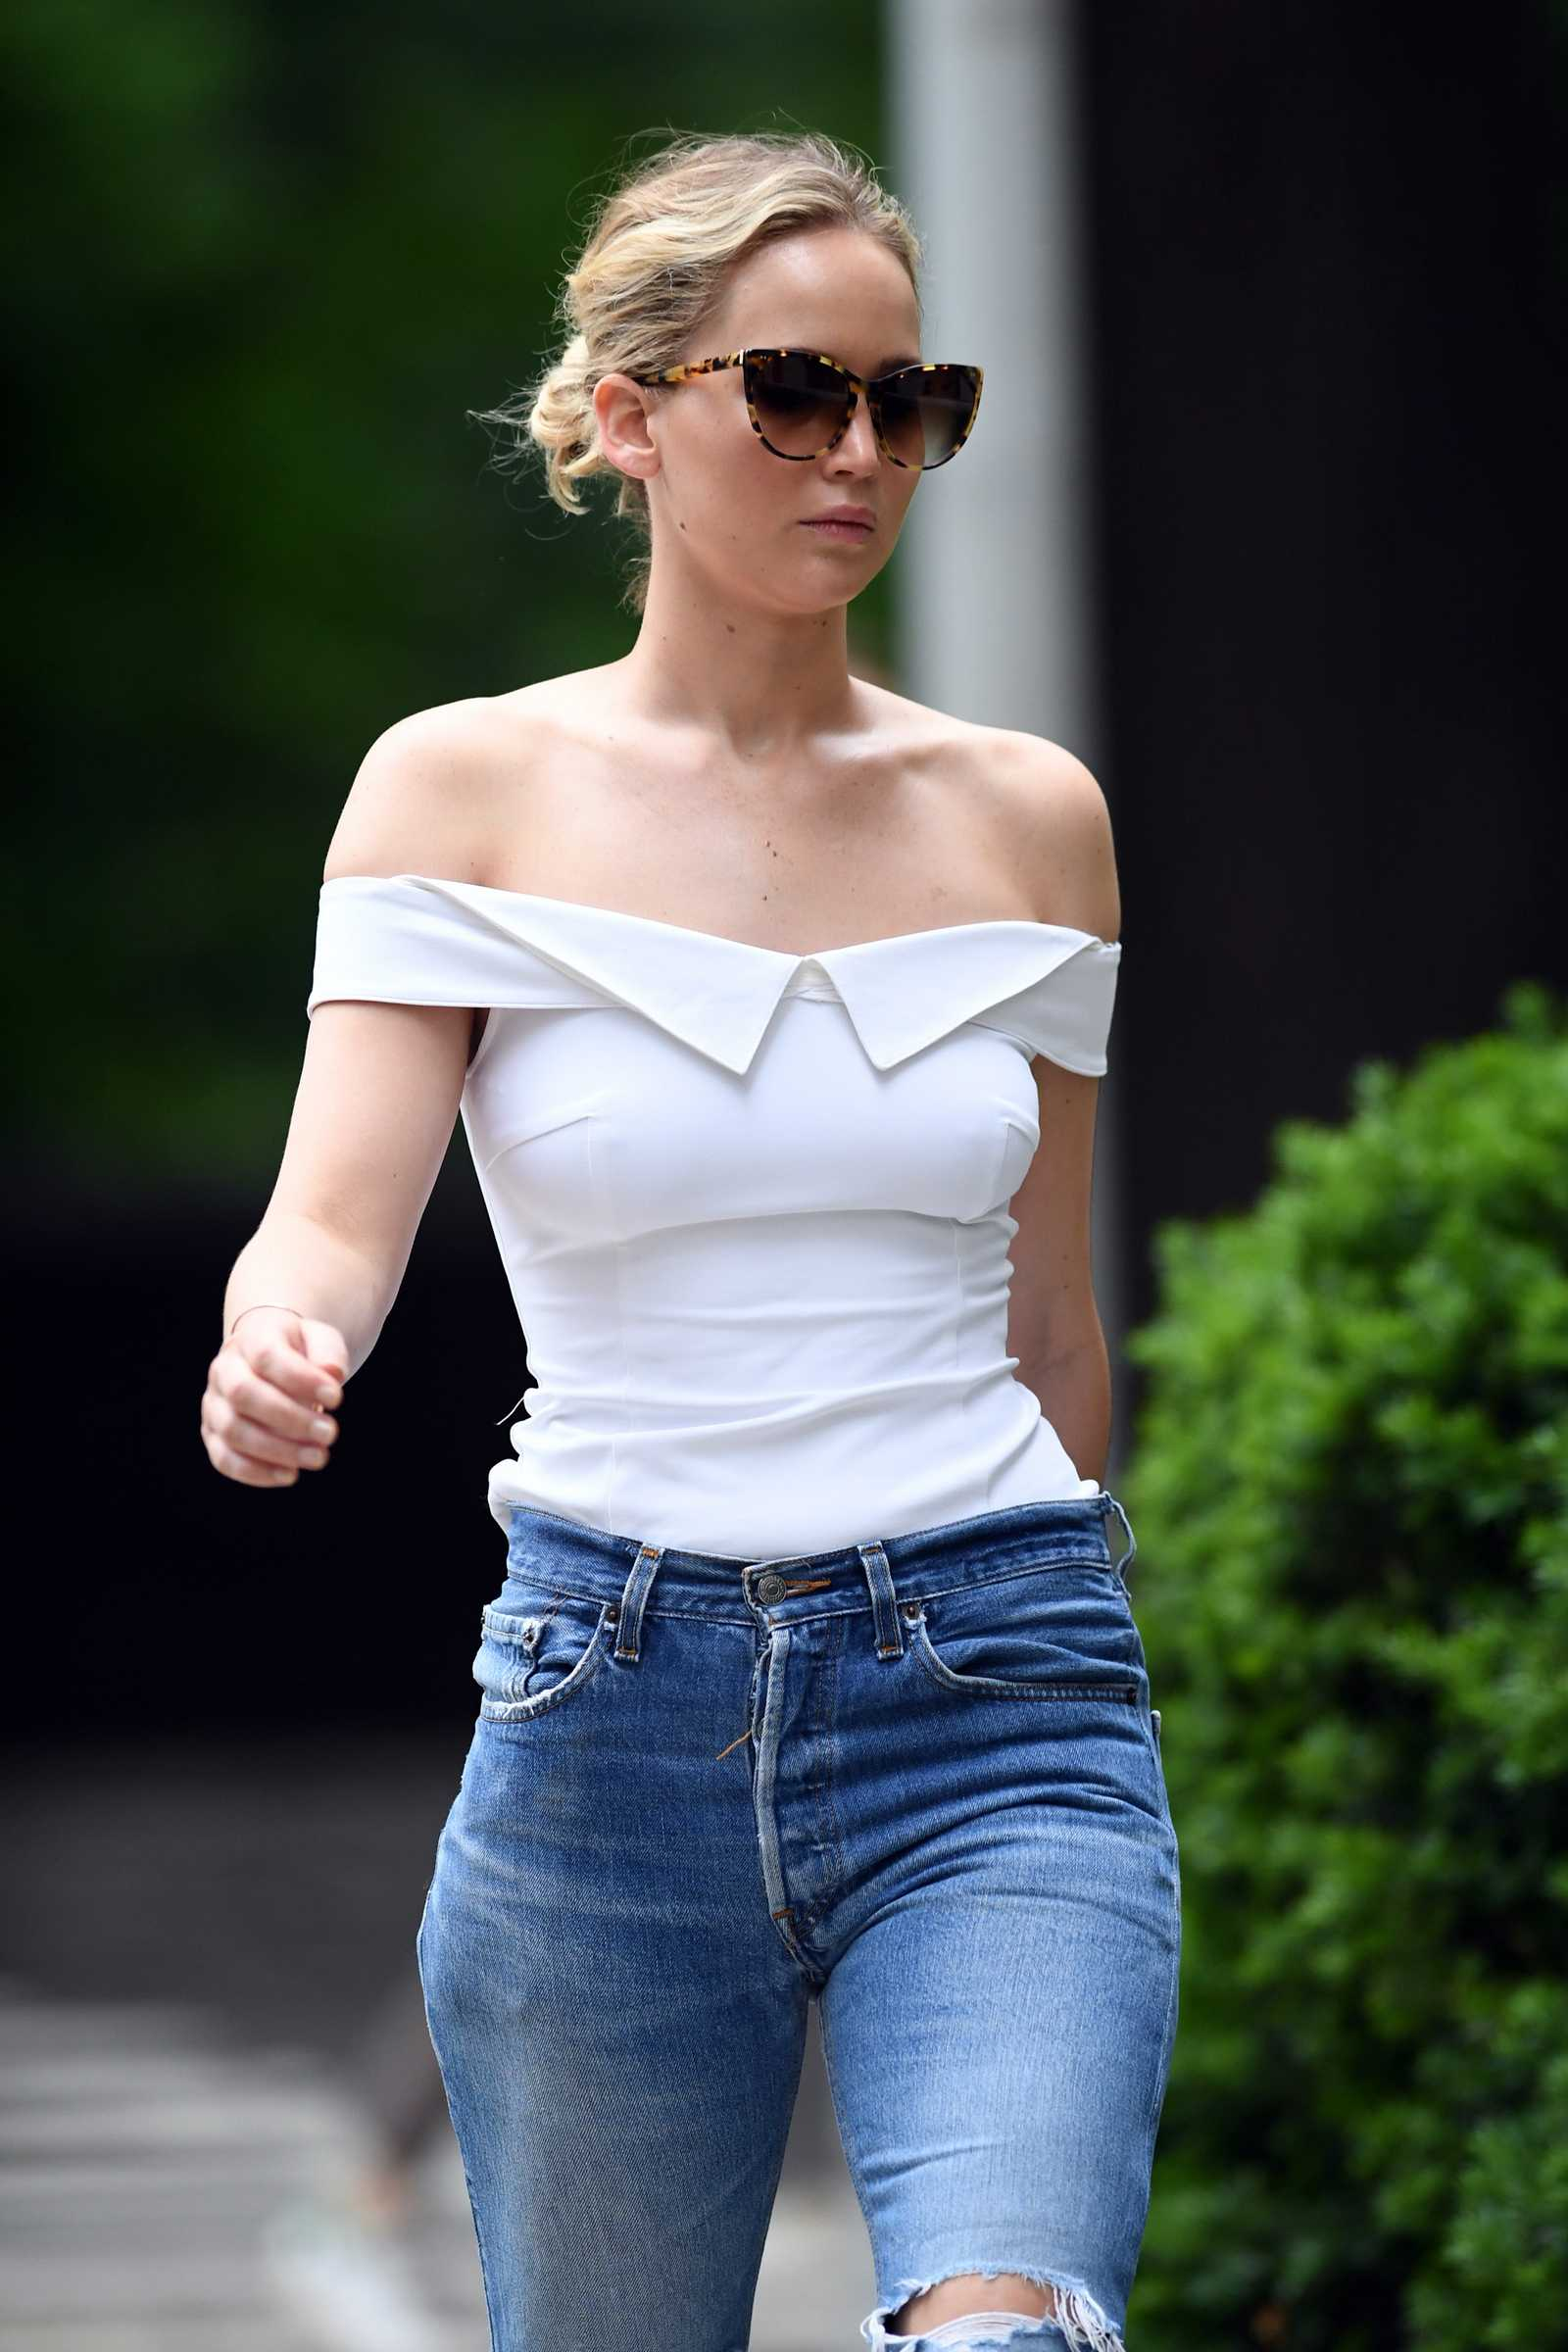 http://jenniferlawrencedaily.com/gallery/albums/userpics/10001/Jennifer_Lawrence_-_Going_for_a_walk_in_Central_Park_on_June_15-14.jpg